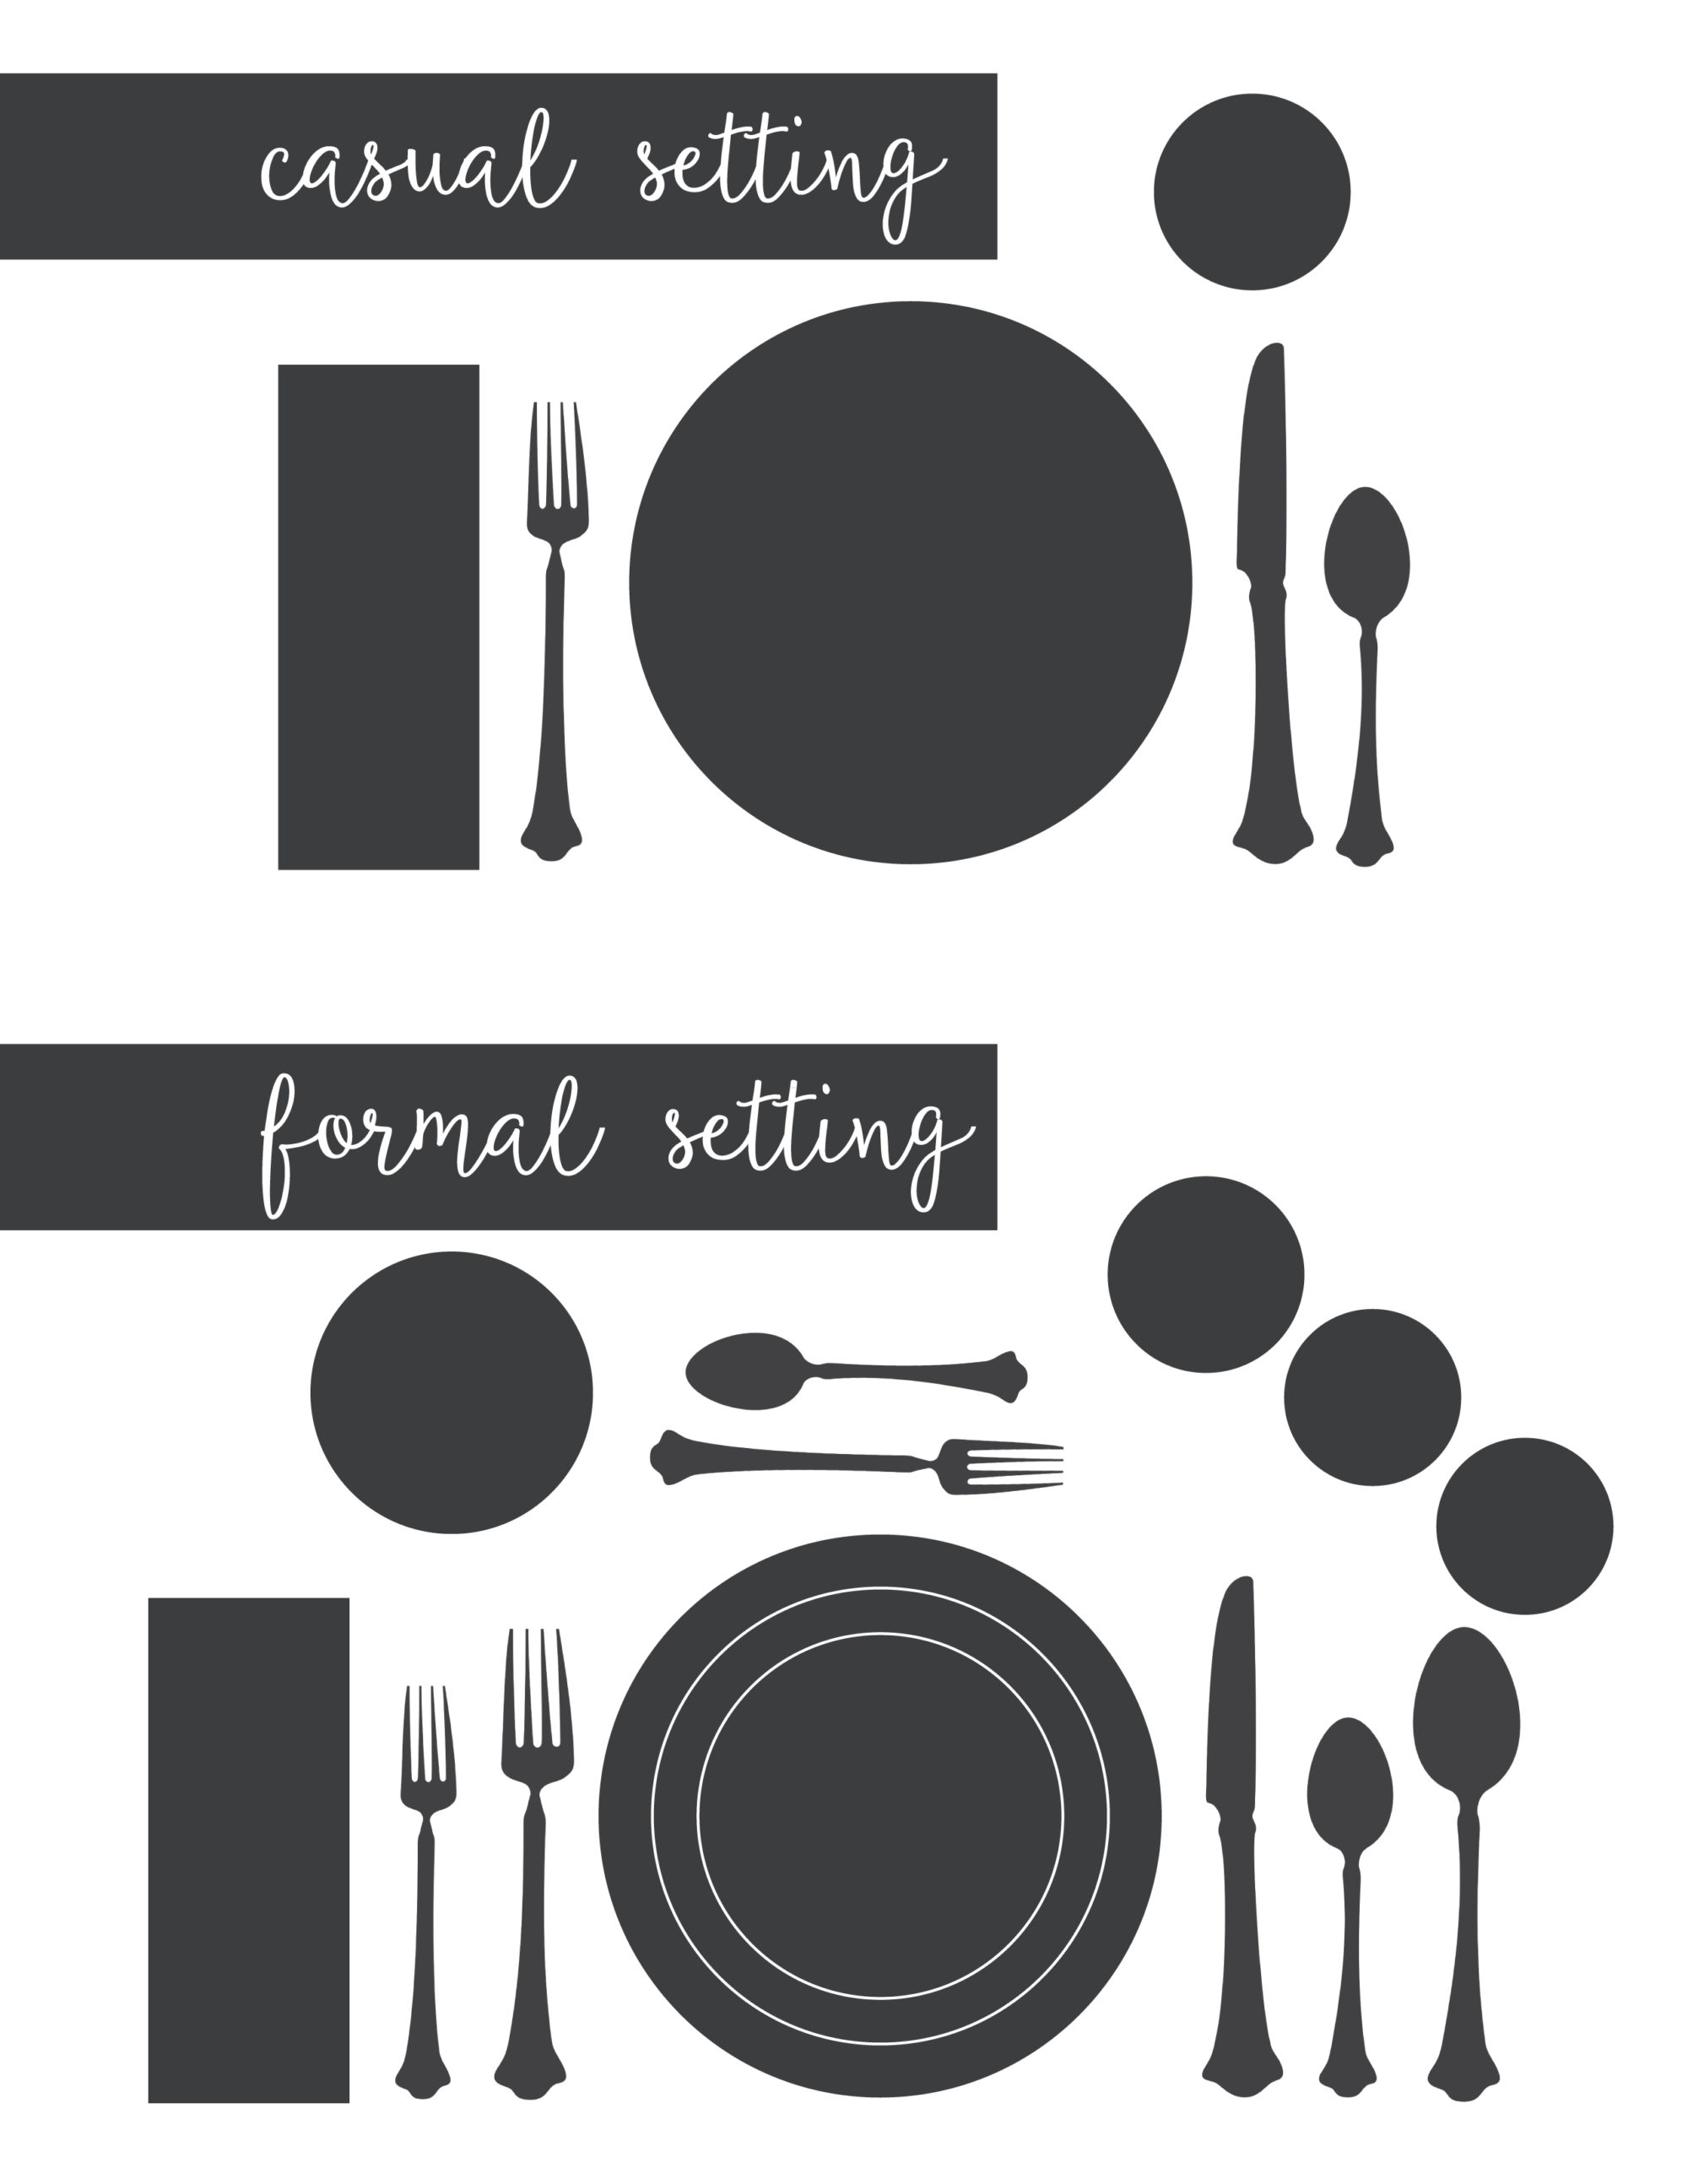 Casual dinner table setting - Entertaining Tips Setting A Proper Table